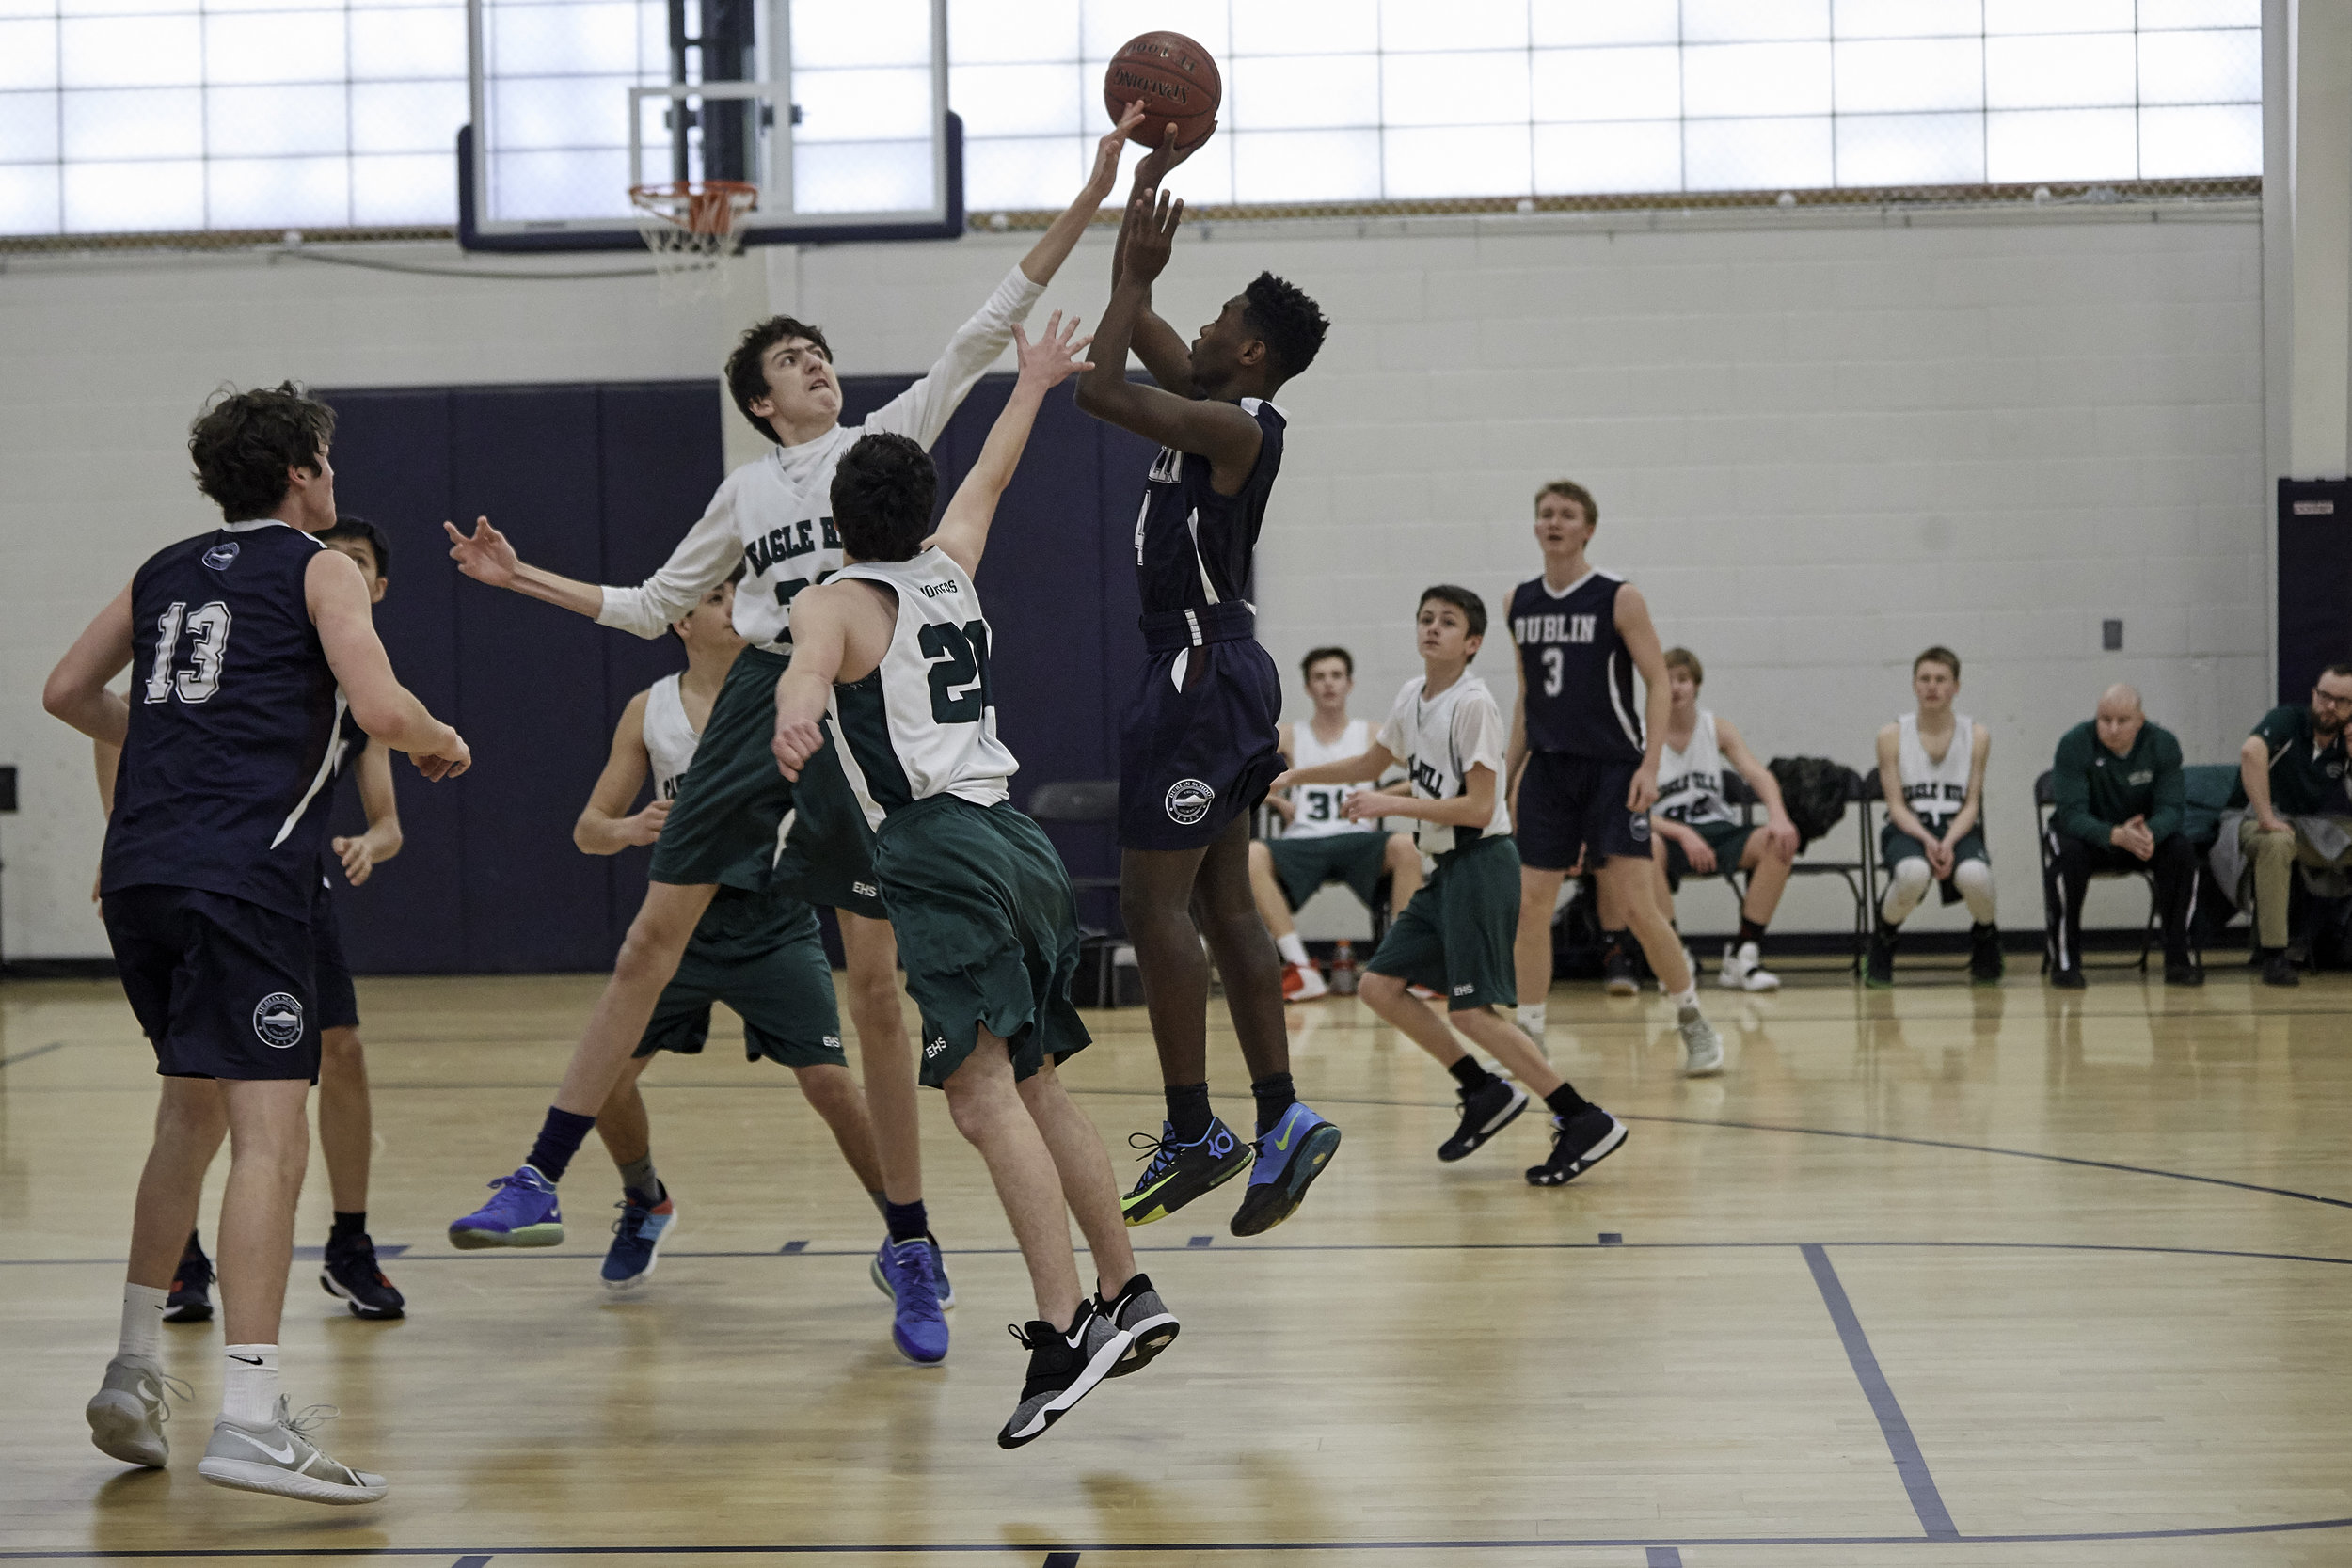 Boys Varsity Basketball vs. Eagle Hill School JV at RVAL Tournament - February 11, 2019 - 167749.jpg